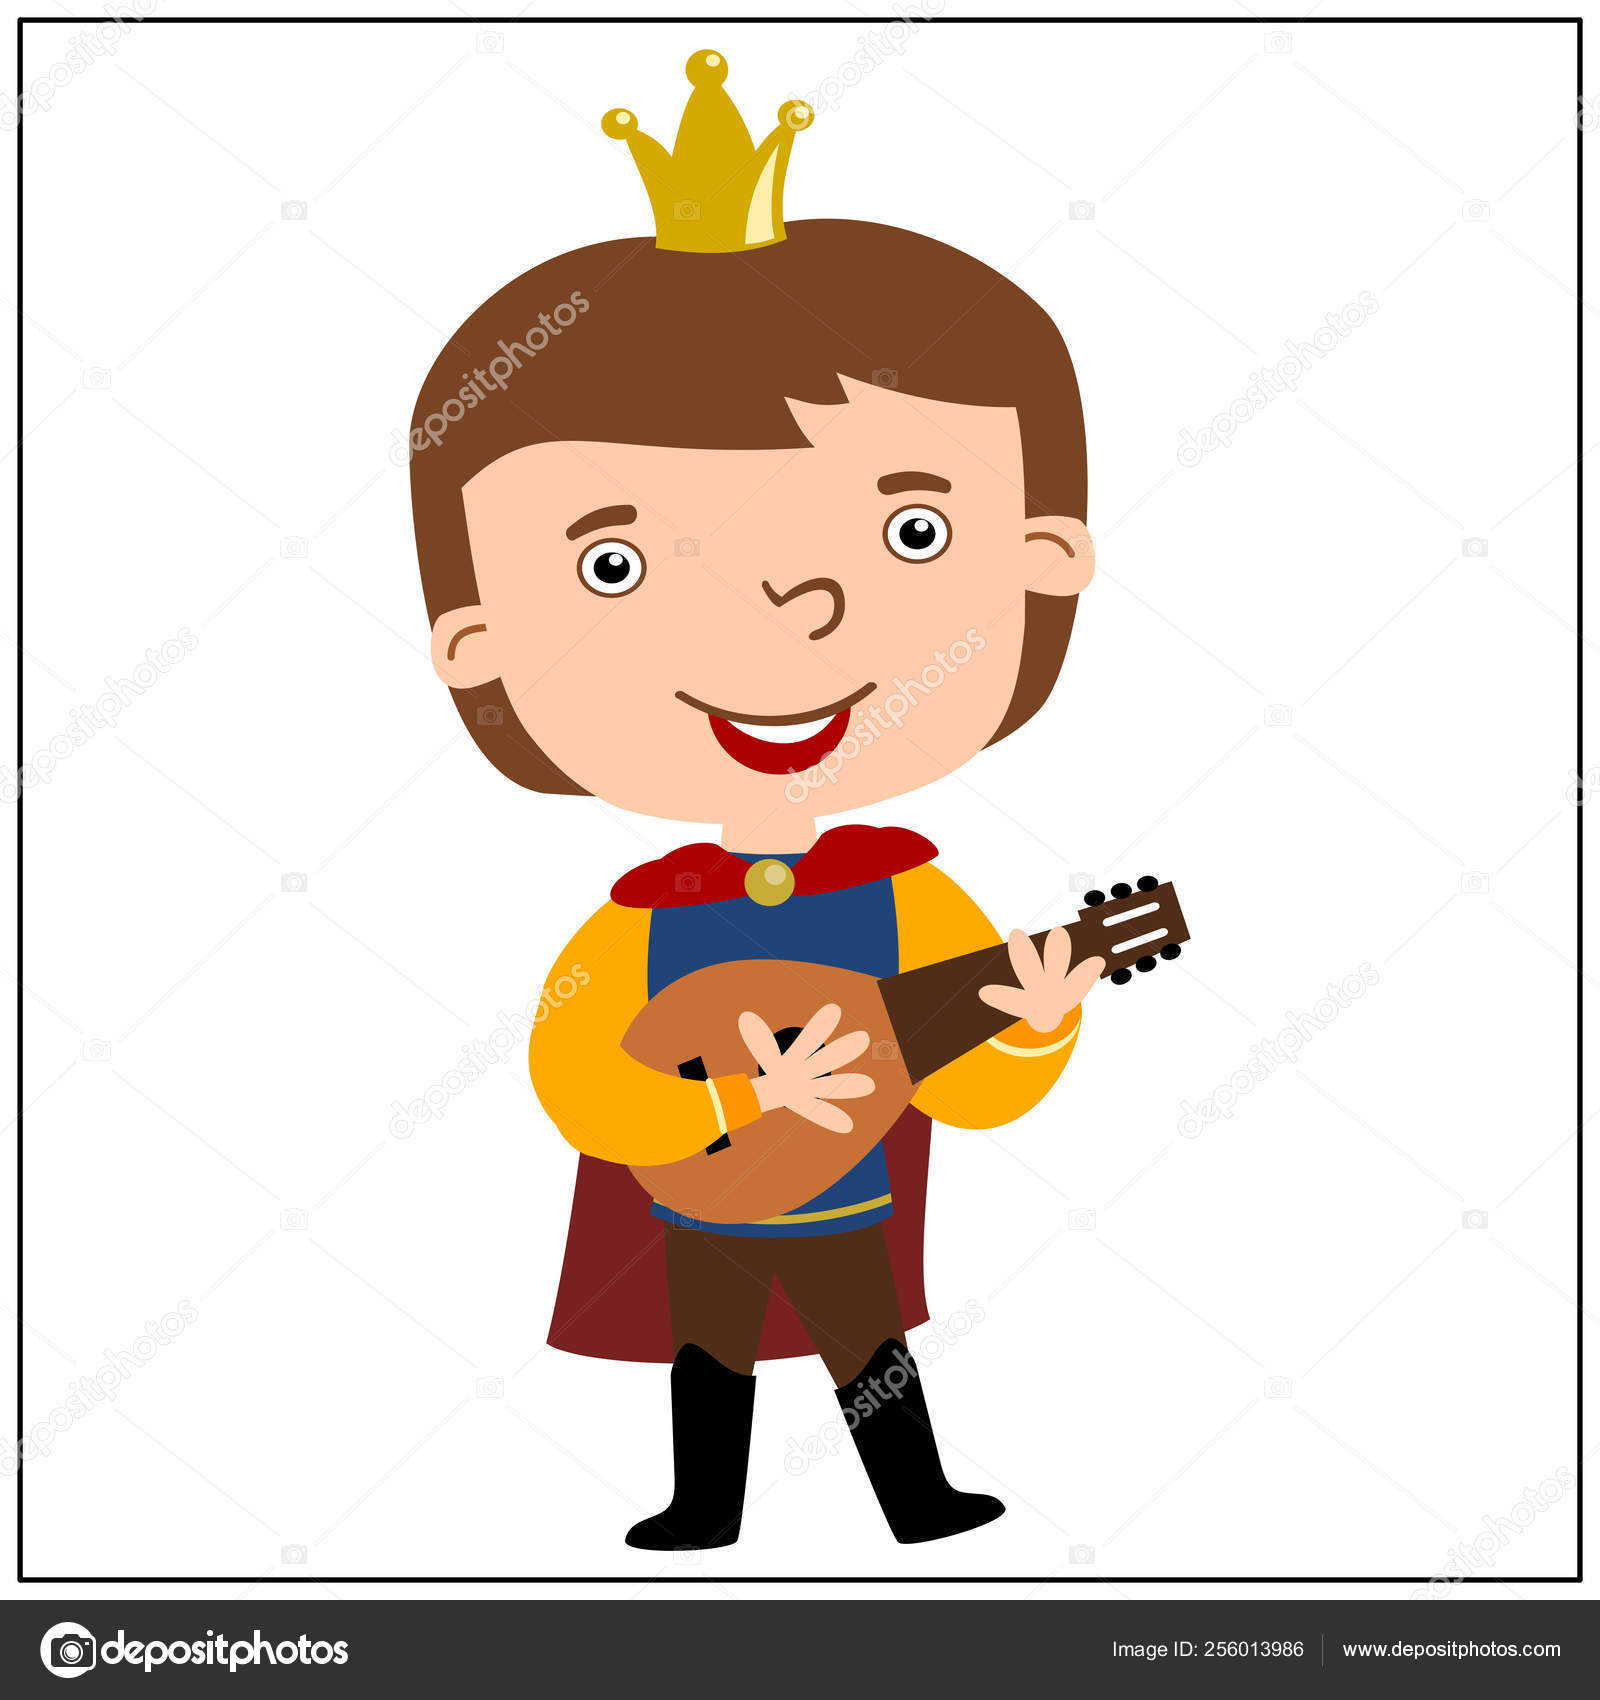 Cartoon Character Funny Prince Crown Head Playing Lute Isolated White Stock Vector C Dmitriy D 256013986 Caps by tag «cartoon characters» — dmitry dalimov's crown caps collection. cartoon character funny prince crown head playing lute isolated white stock vector c dmitriy d 256013986